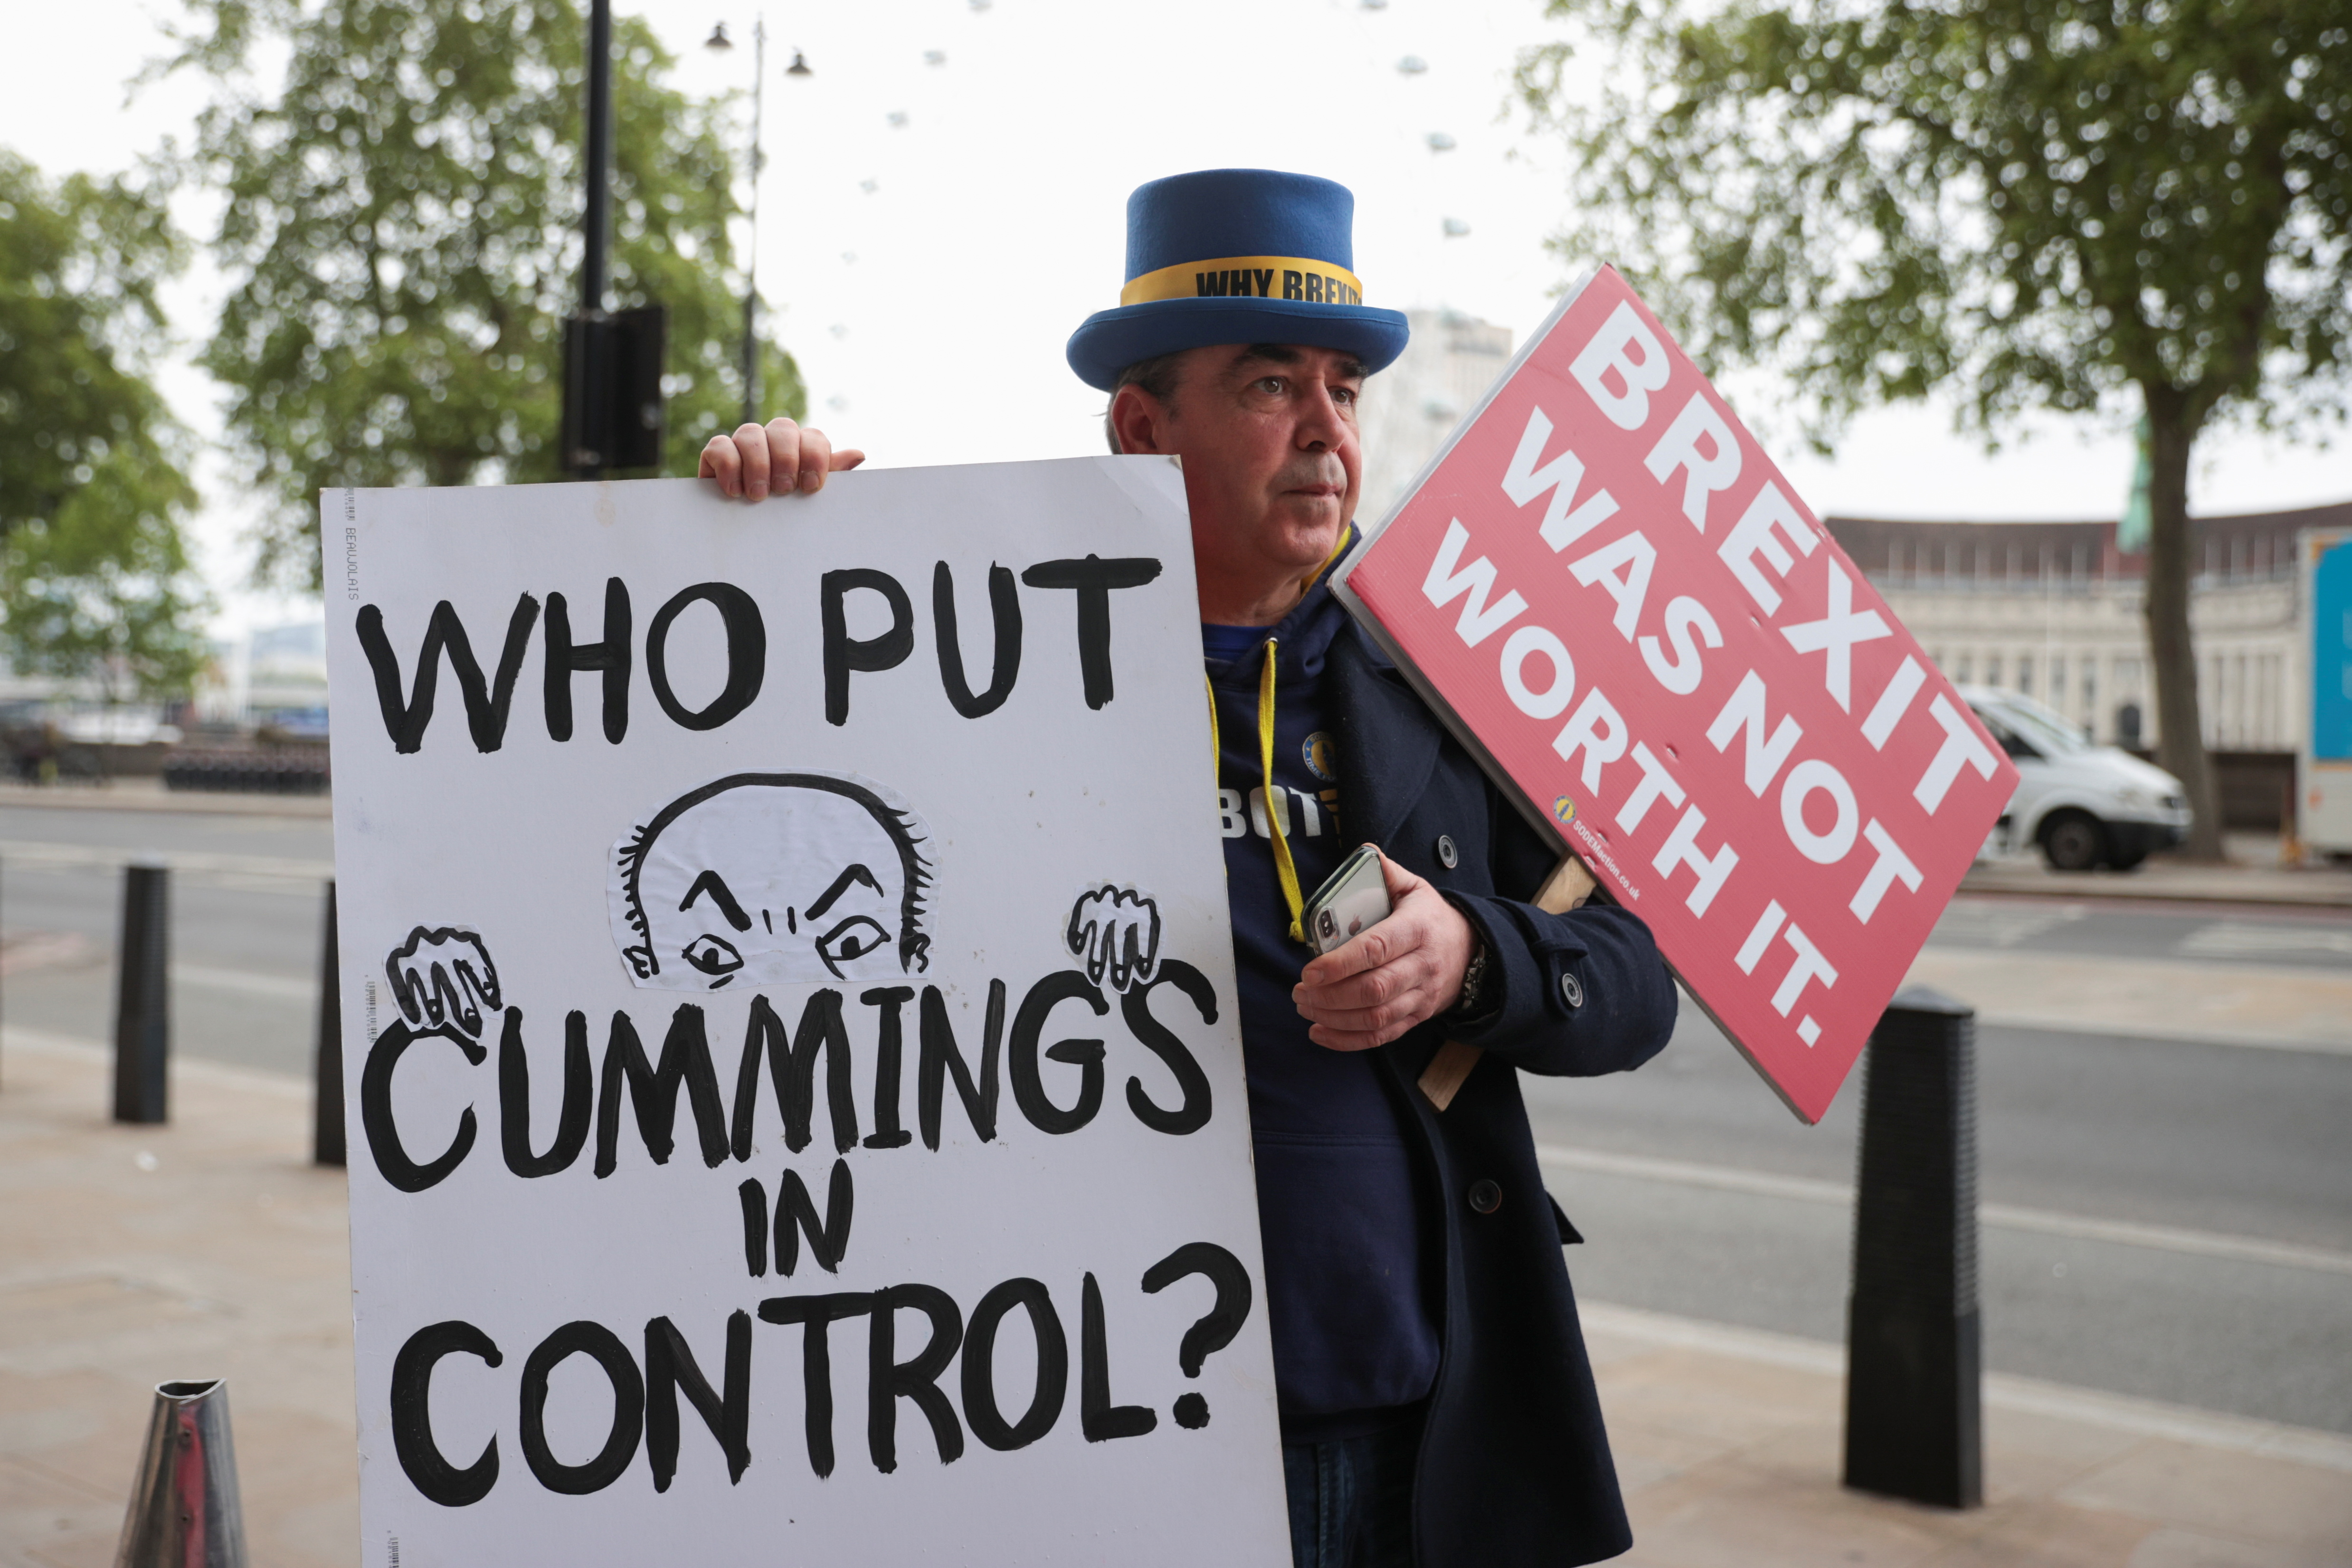 Anti-Brexit protester Steve Bray demonstrates oustide Portcullis House, in Westminster, central London, Britain, May 26, 2021. REUTERS/Hannah McKay